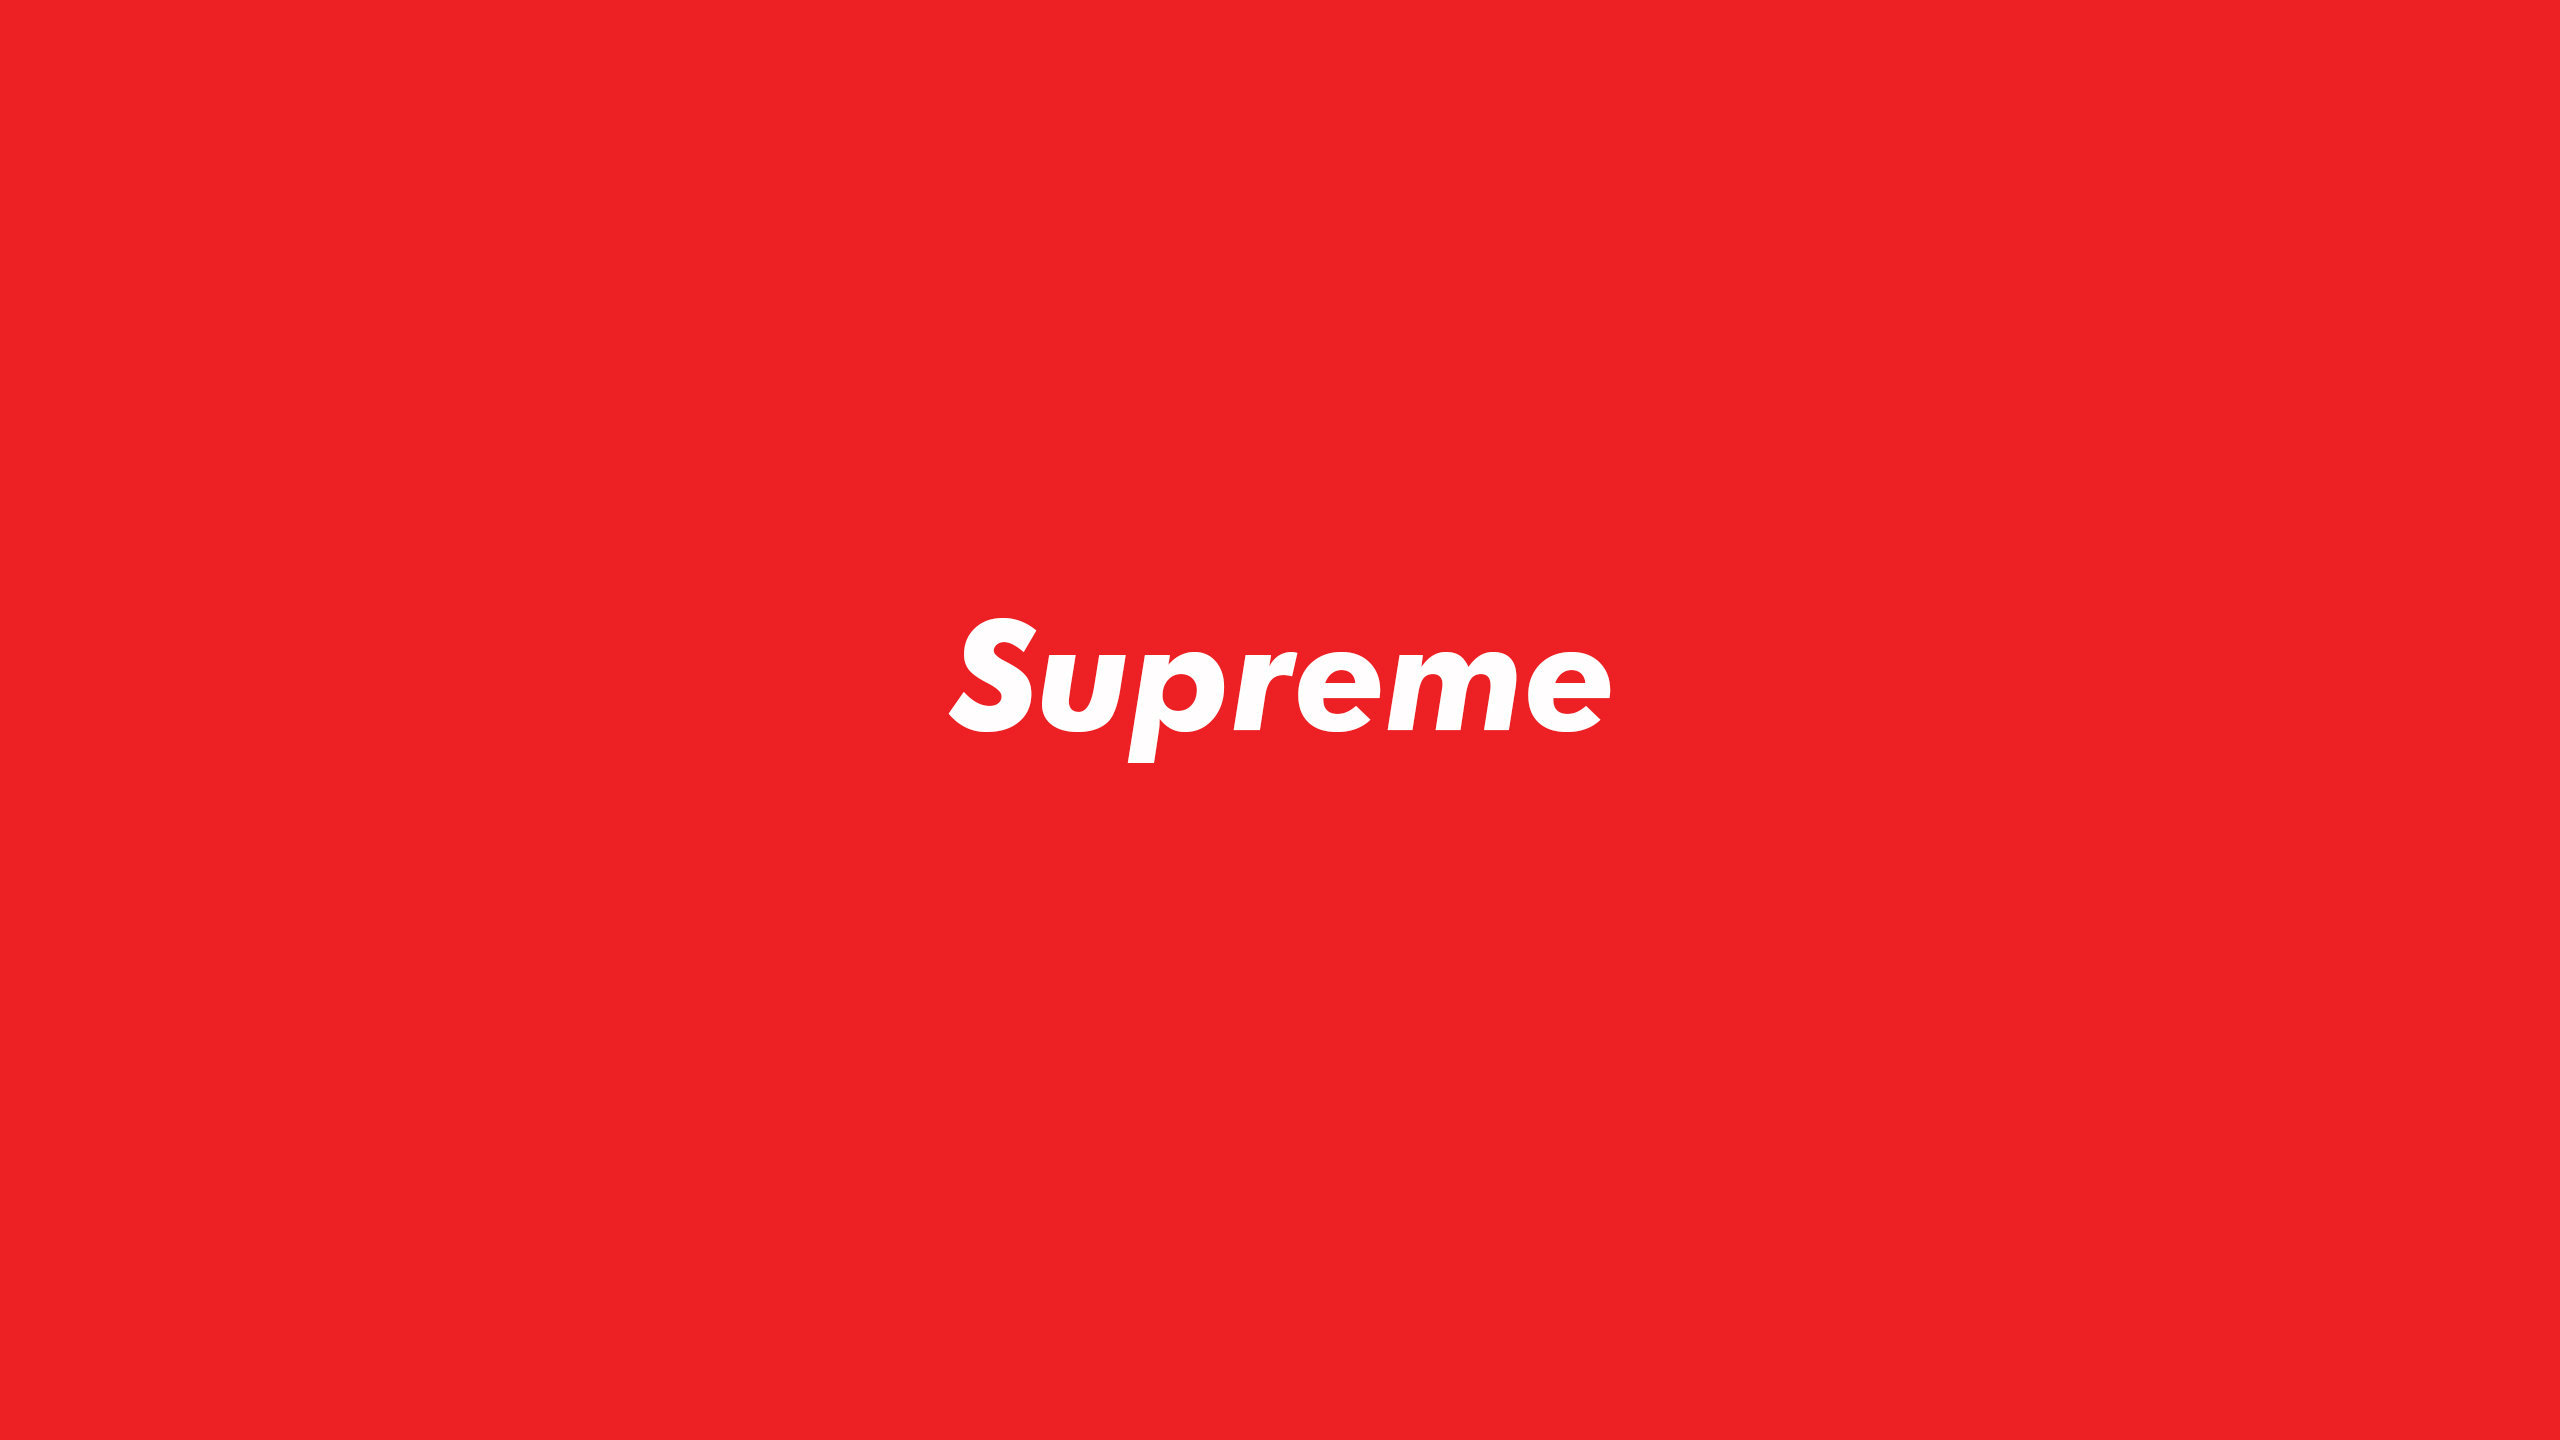 6ef939e856aae0 Download the Supreme Red wallpaper below for your mobile device (Android  phones, iPhone etc.)